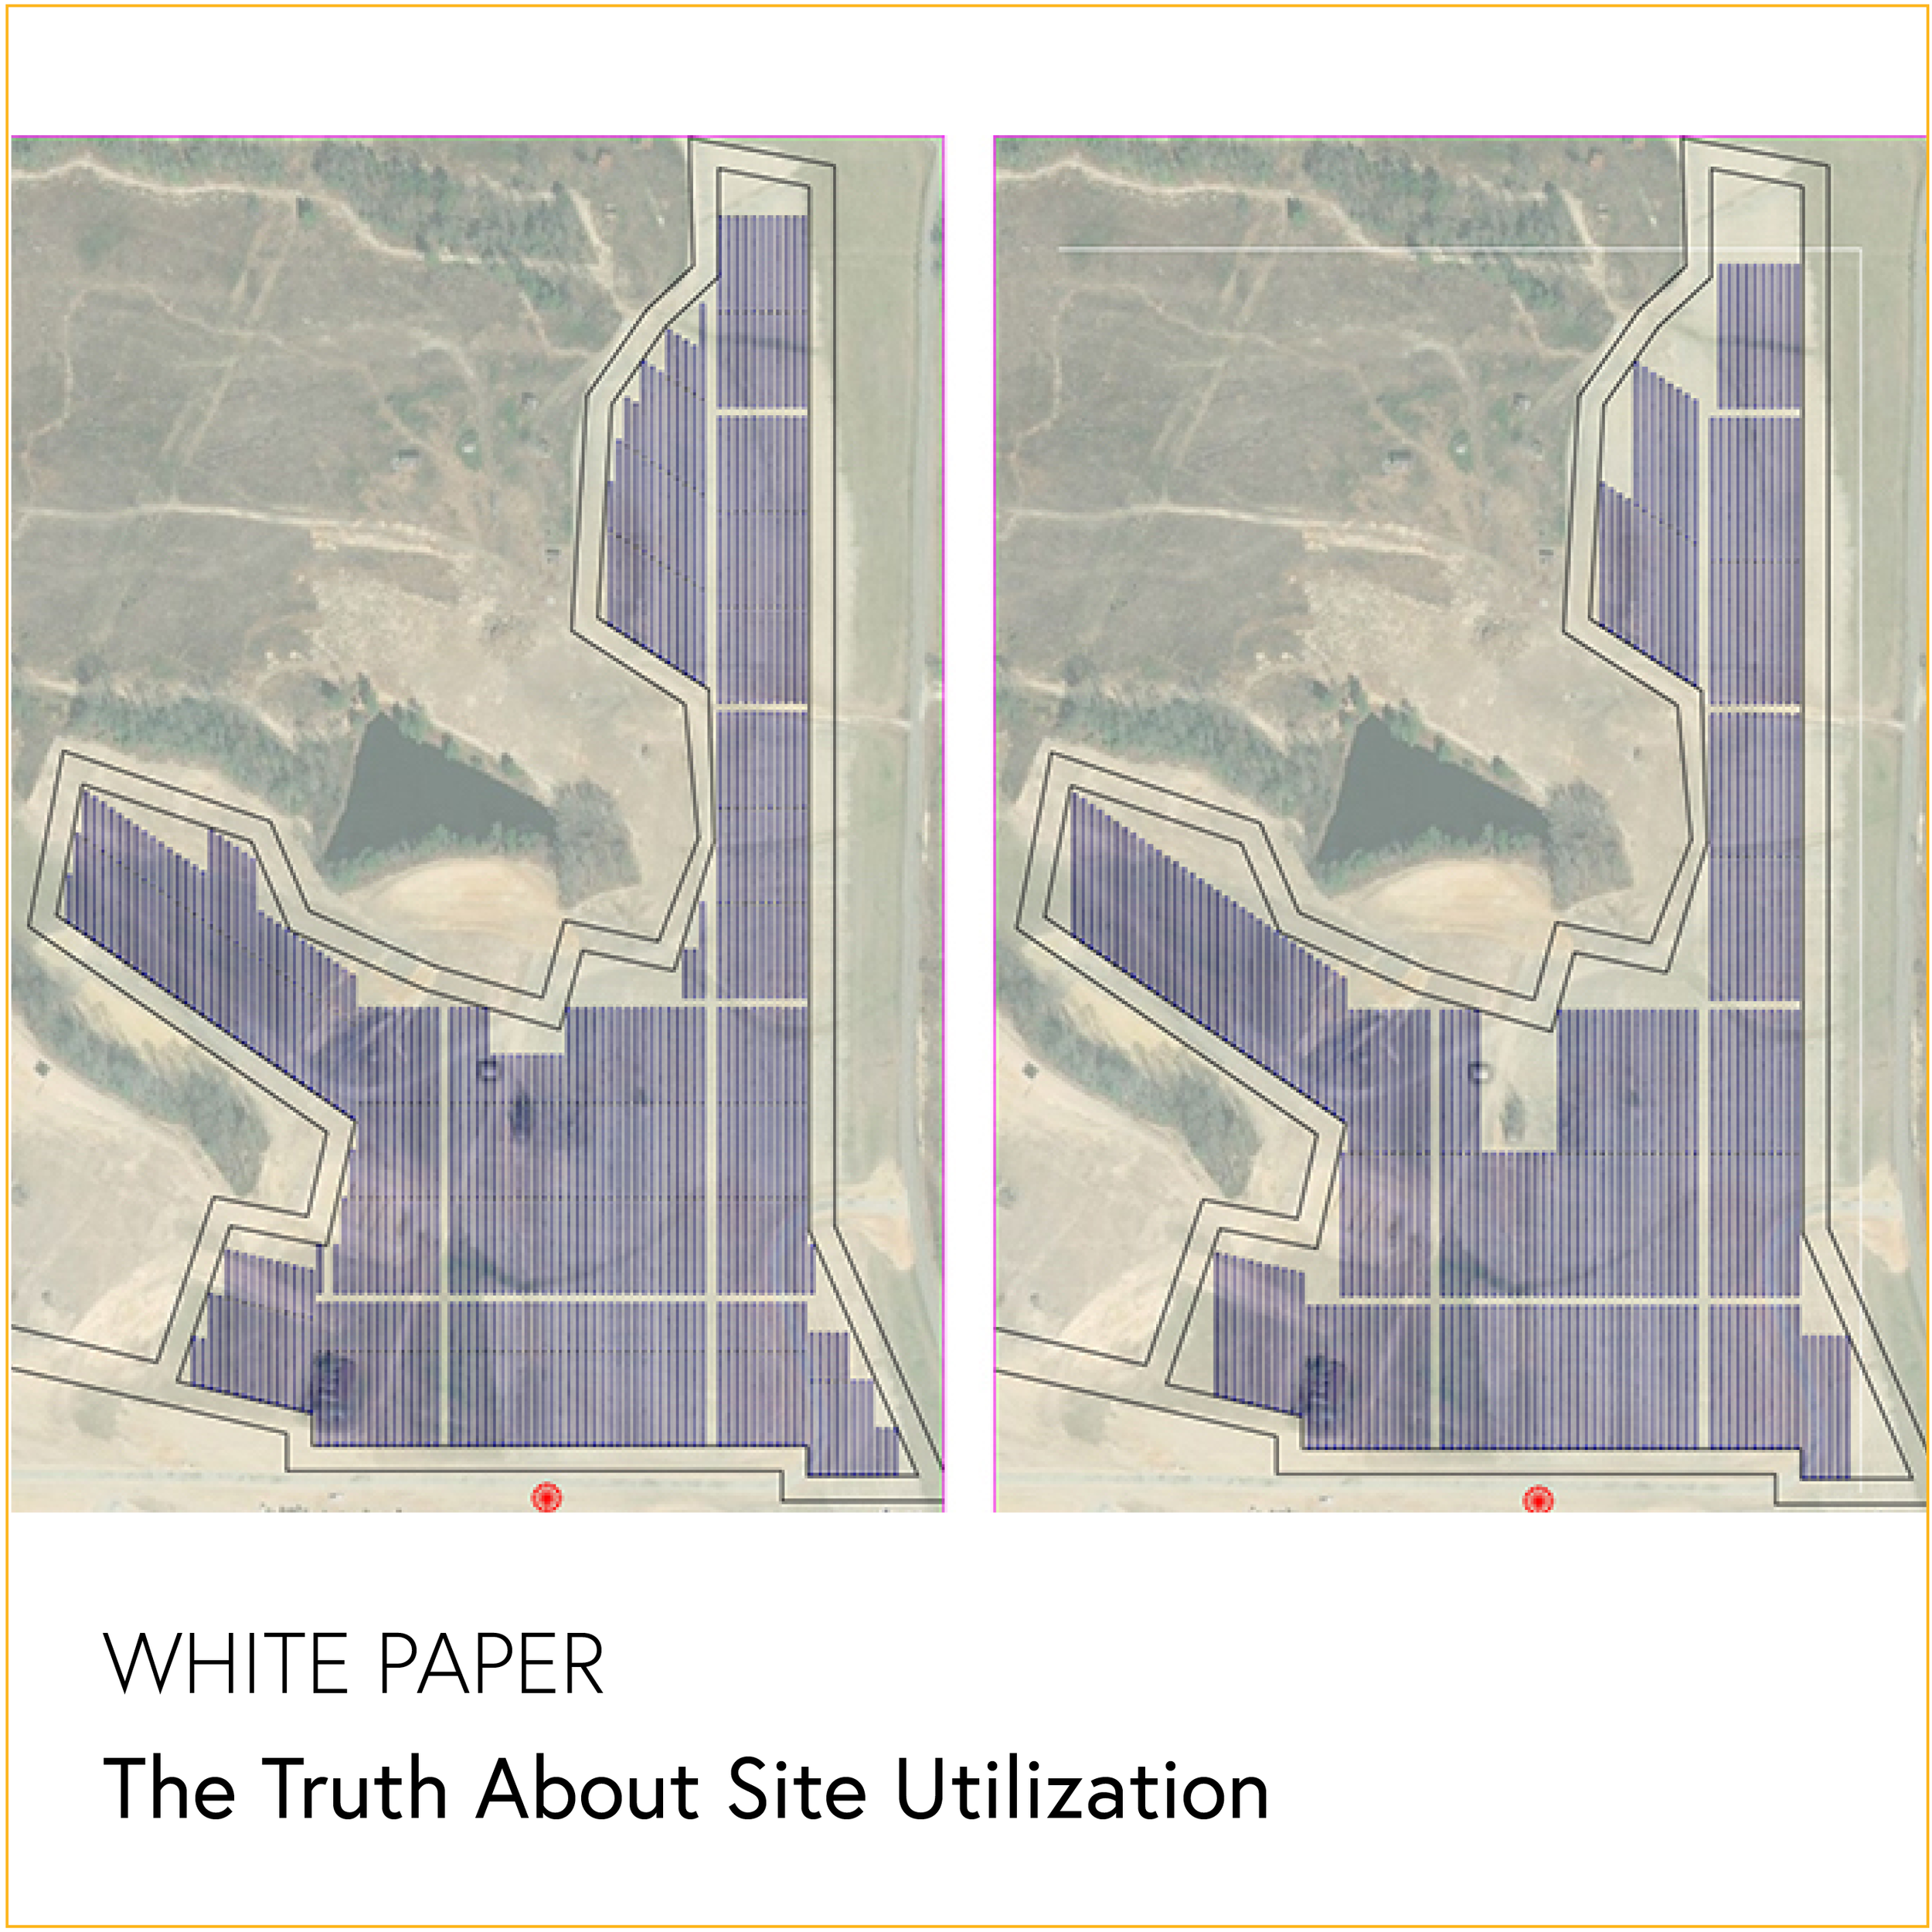 """The Truth About Site Utilization - WHITE PAPERSolar projects with the best site utilization can maximize profit margin. But how do you calculate site use?Download """"The Truth About Site Utilization"""" to learn about three design criteria that impact the optimal use of your project site."""